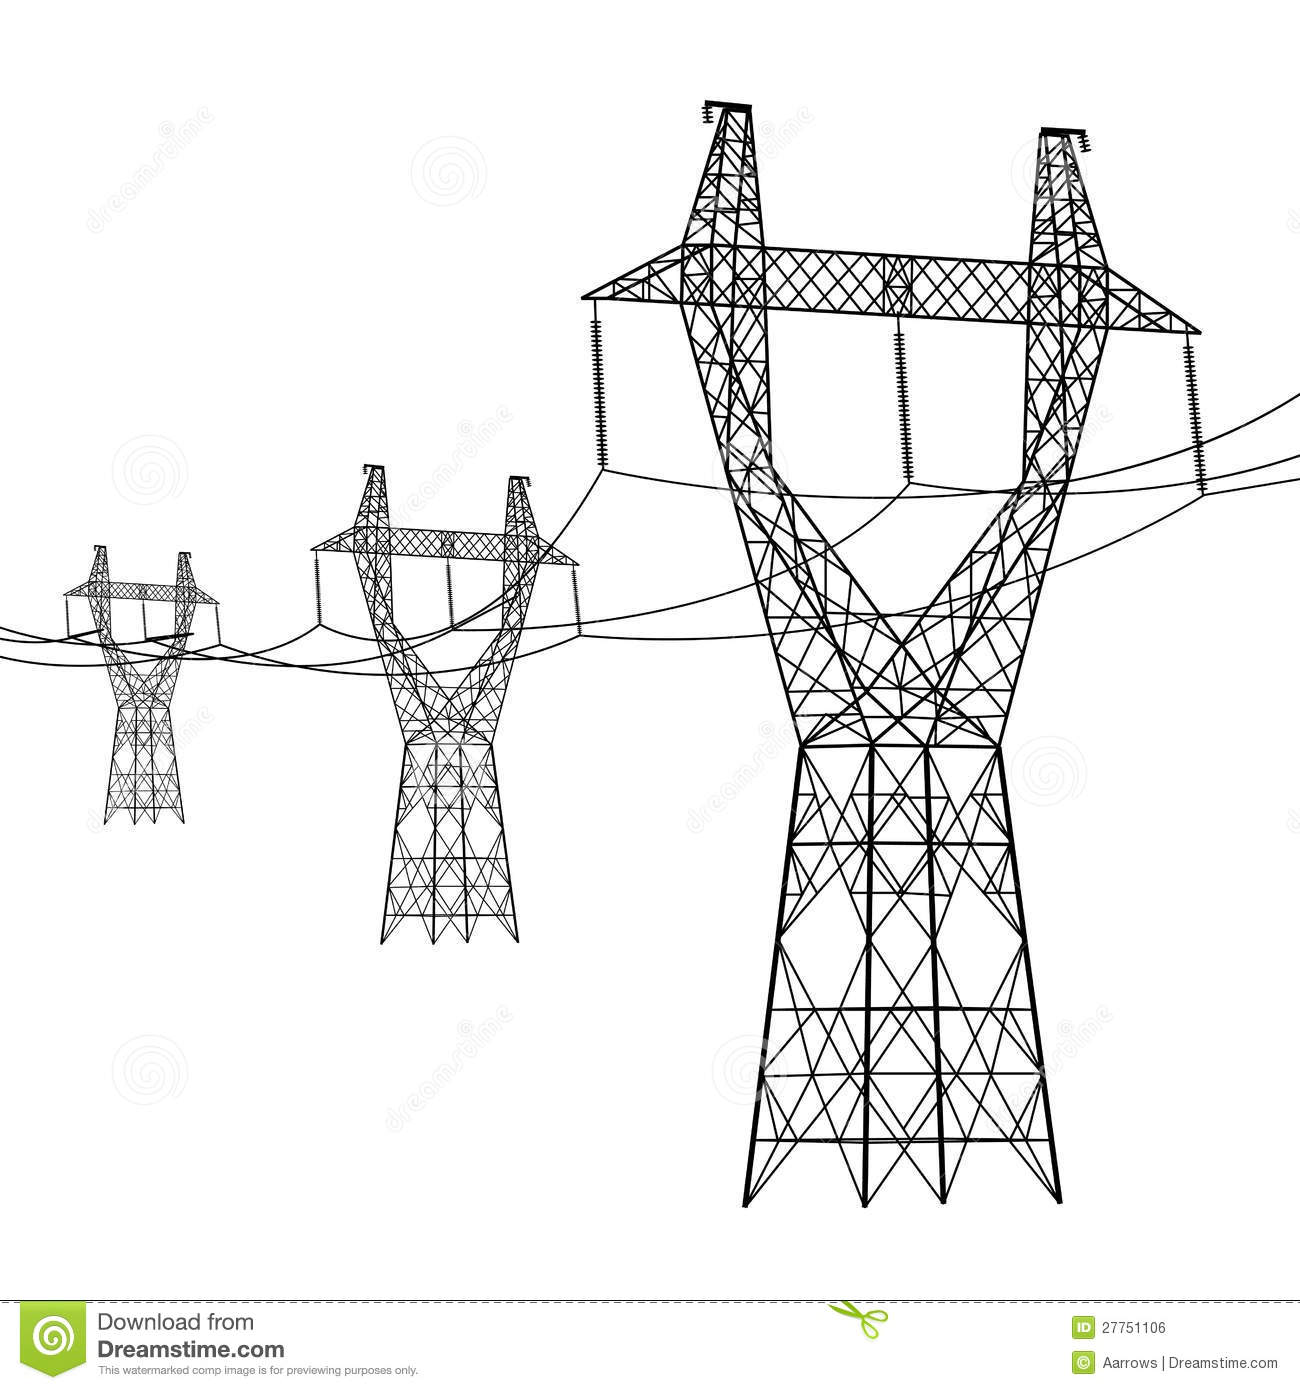 Silhouette Of High Voltage Power Lines Royalty Free Stock Image.